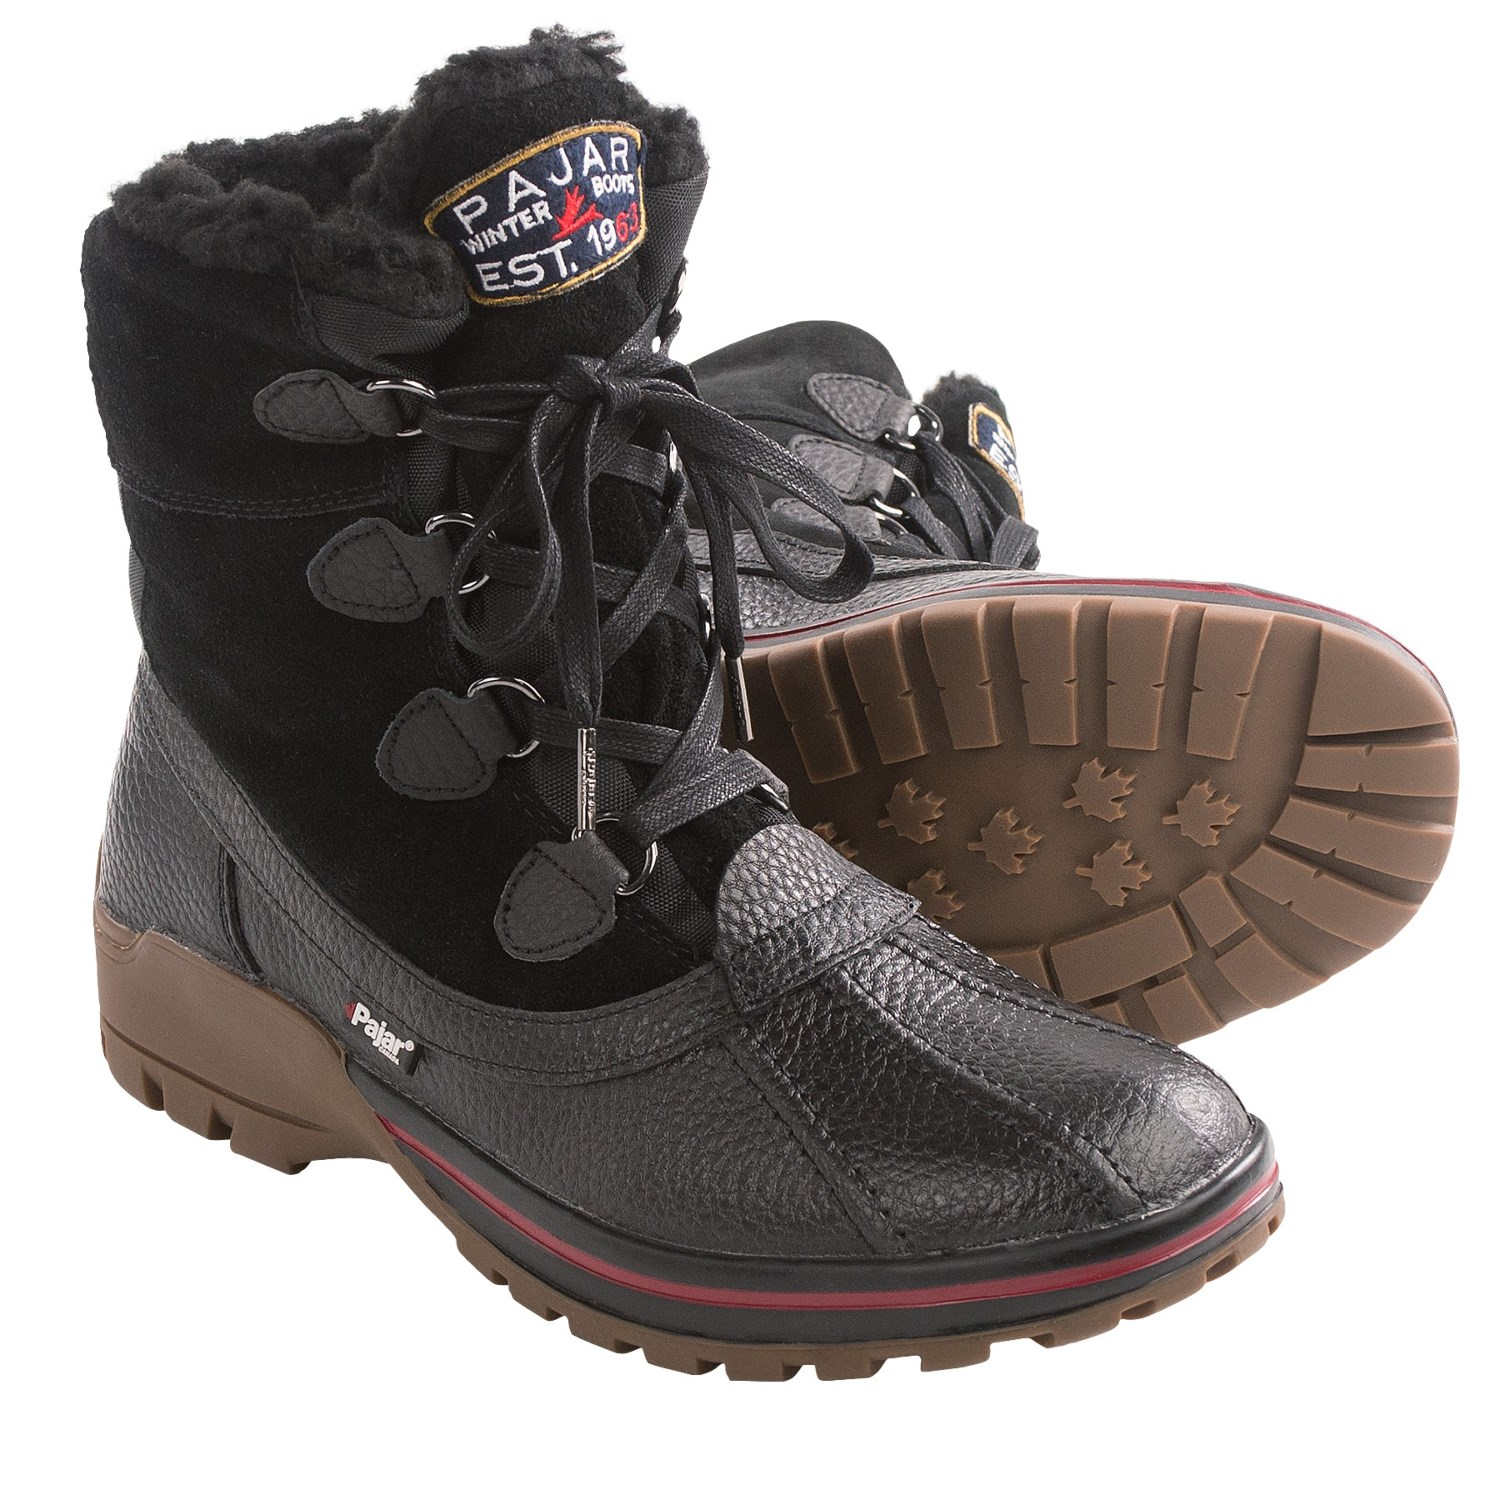 Mens Extra Wide Winter Boots Canada | Homewood Mountain Ski Resort